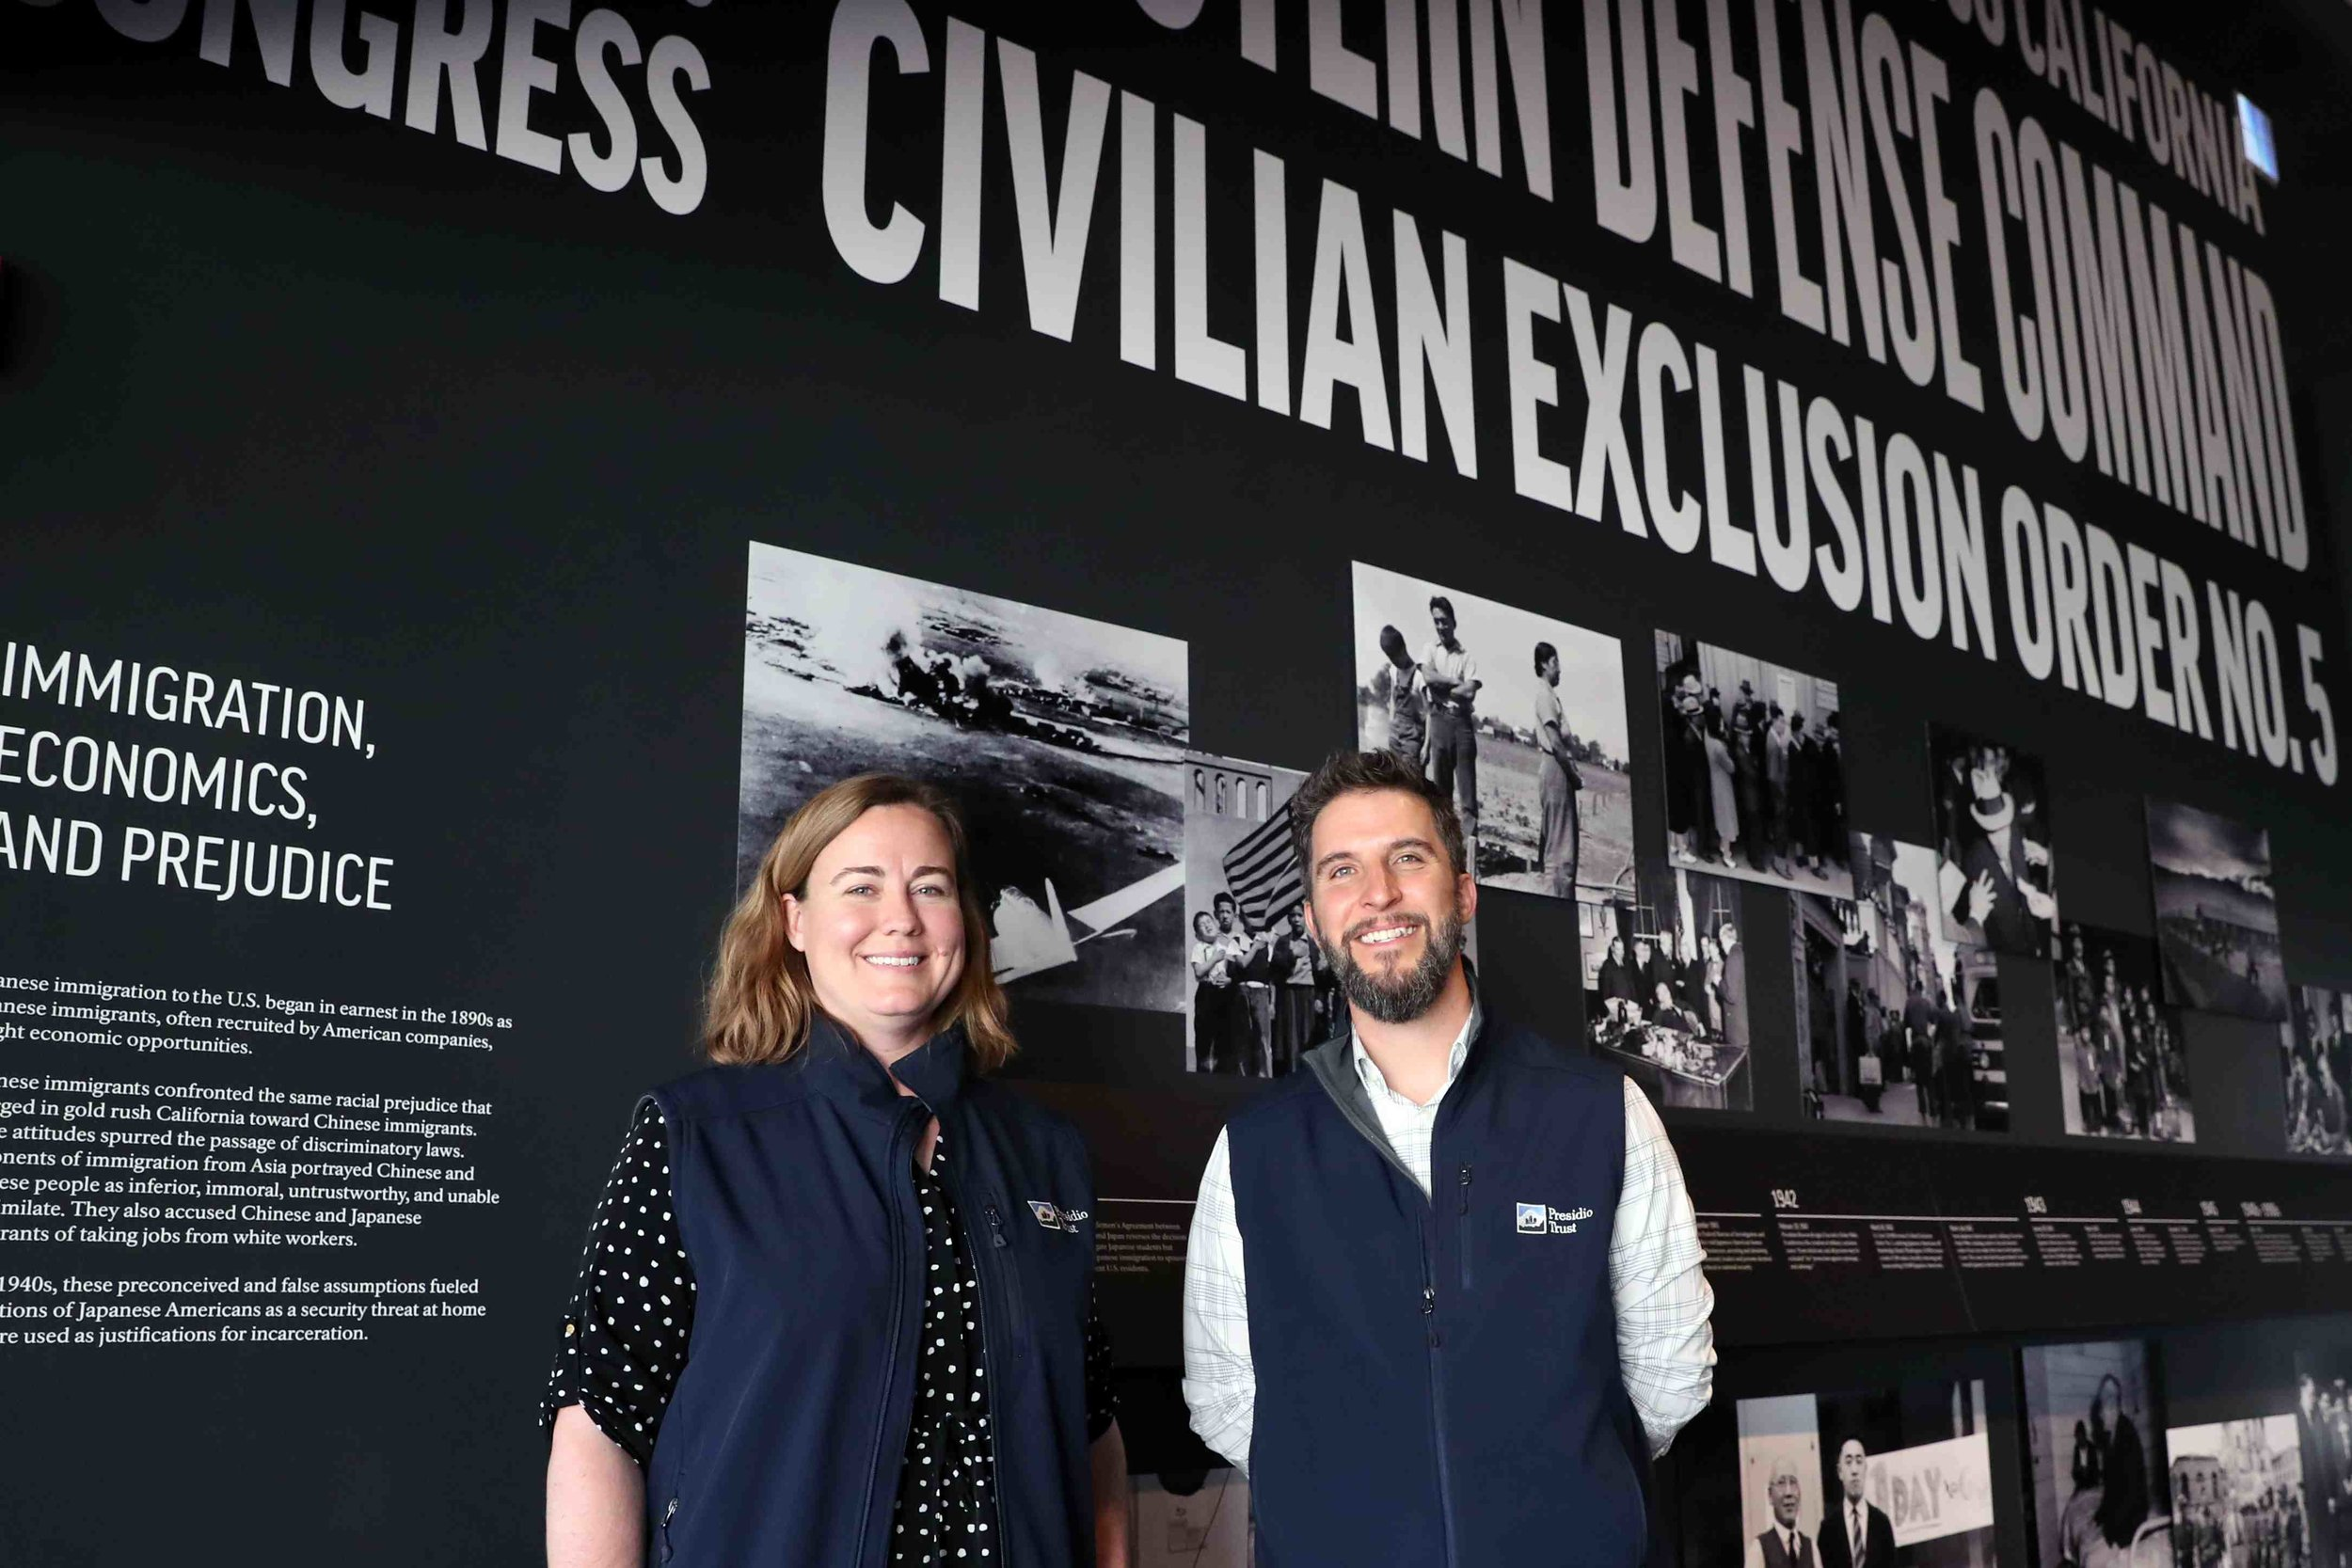 """Kathryn Inglin, Presidio associate director of external affairs, and Eric Blind of the Presidio Trust stand in front of one of the displays of the """"Exclusion"""" exhibit.  Photo by Darren Yamashita"""